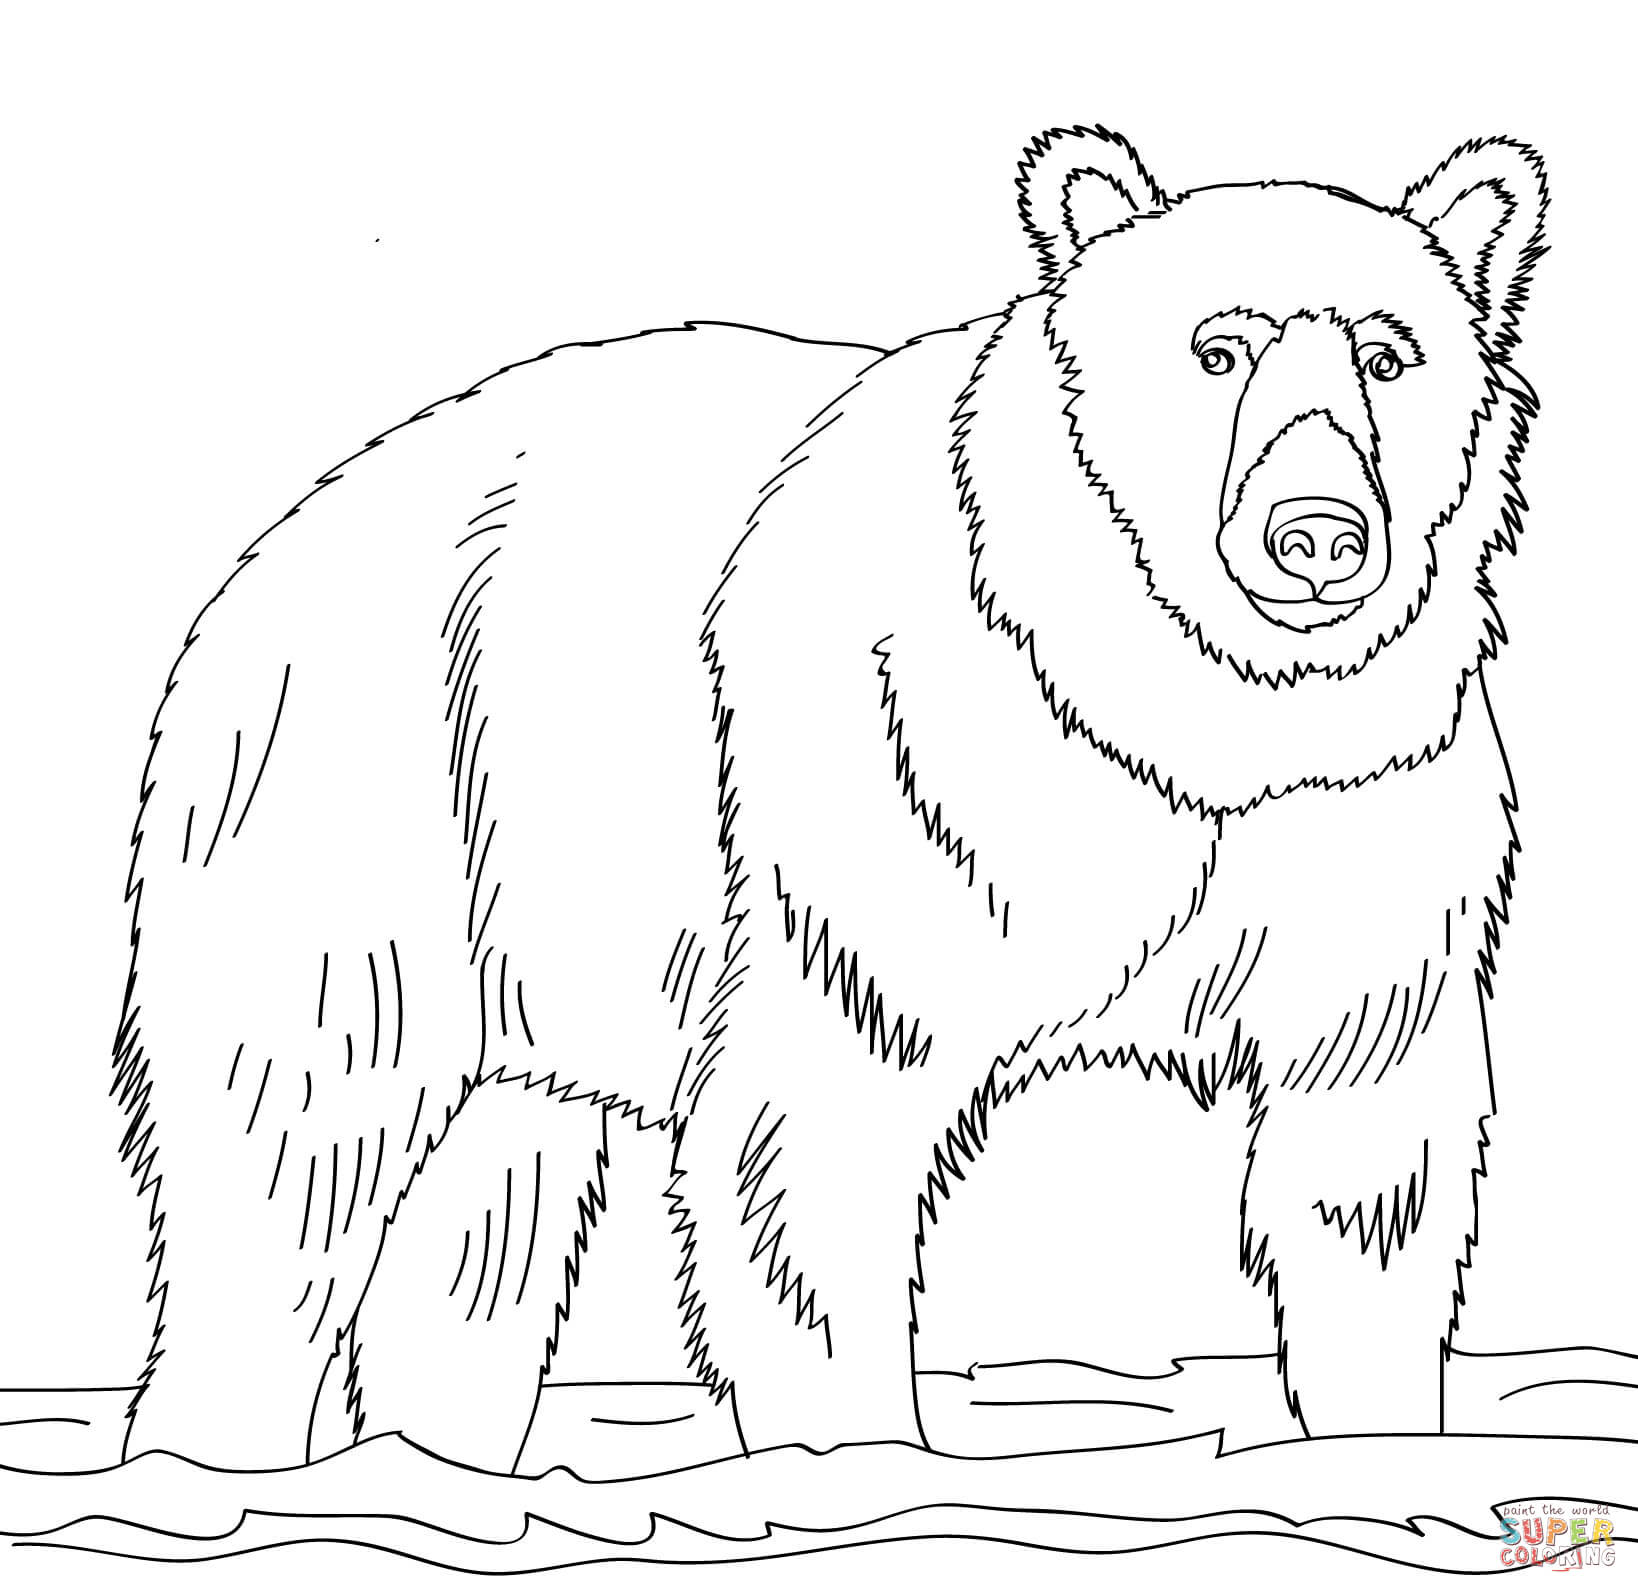 bear line drawing bear line drawing at getdrawings free download drawing bear line